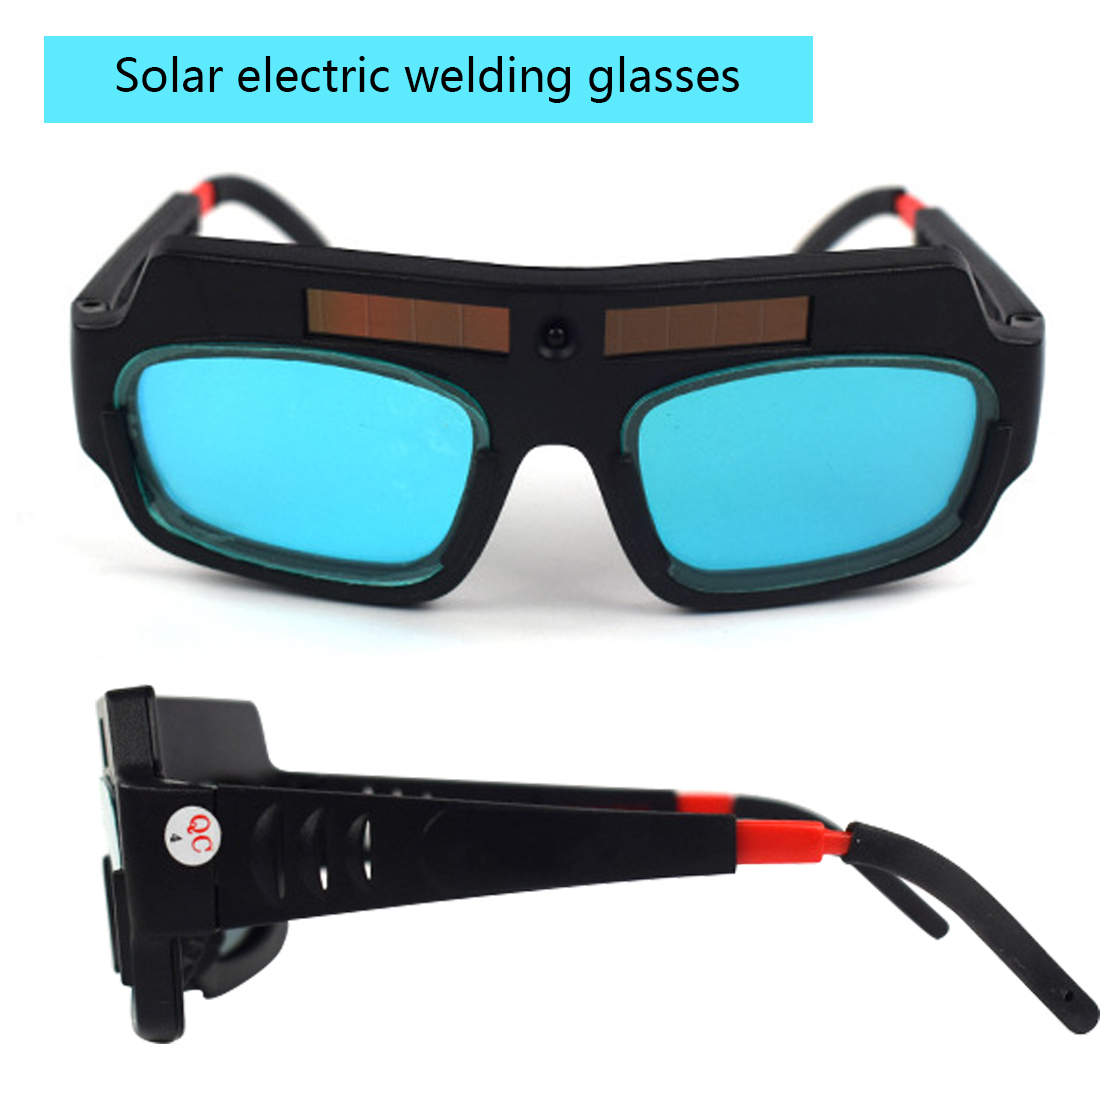 1pcs Welding Protection Solar Powered Auto Darkening Welding Mask Helmet Goggle Welder Glasses Adjustable Mirror Leg Goggles